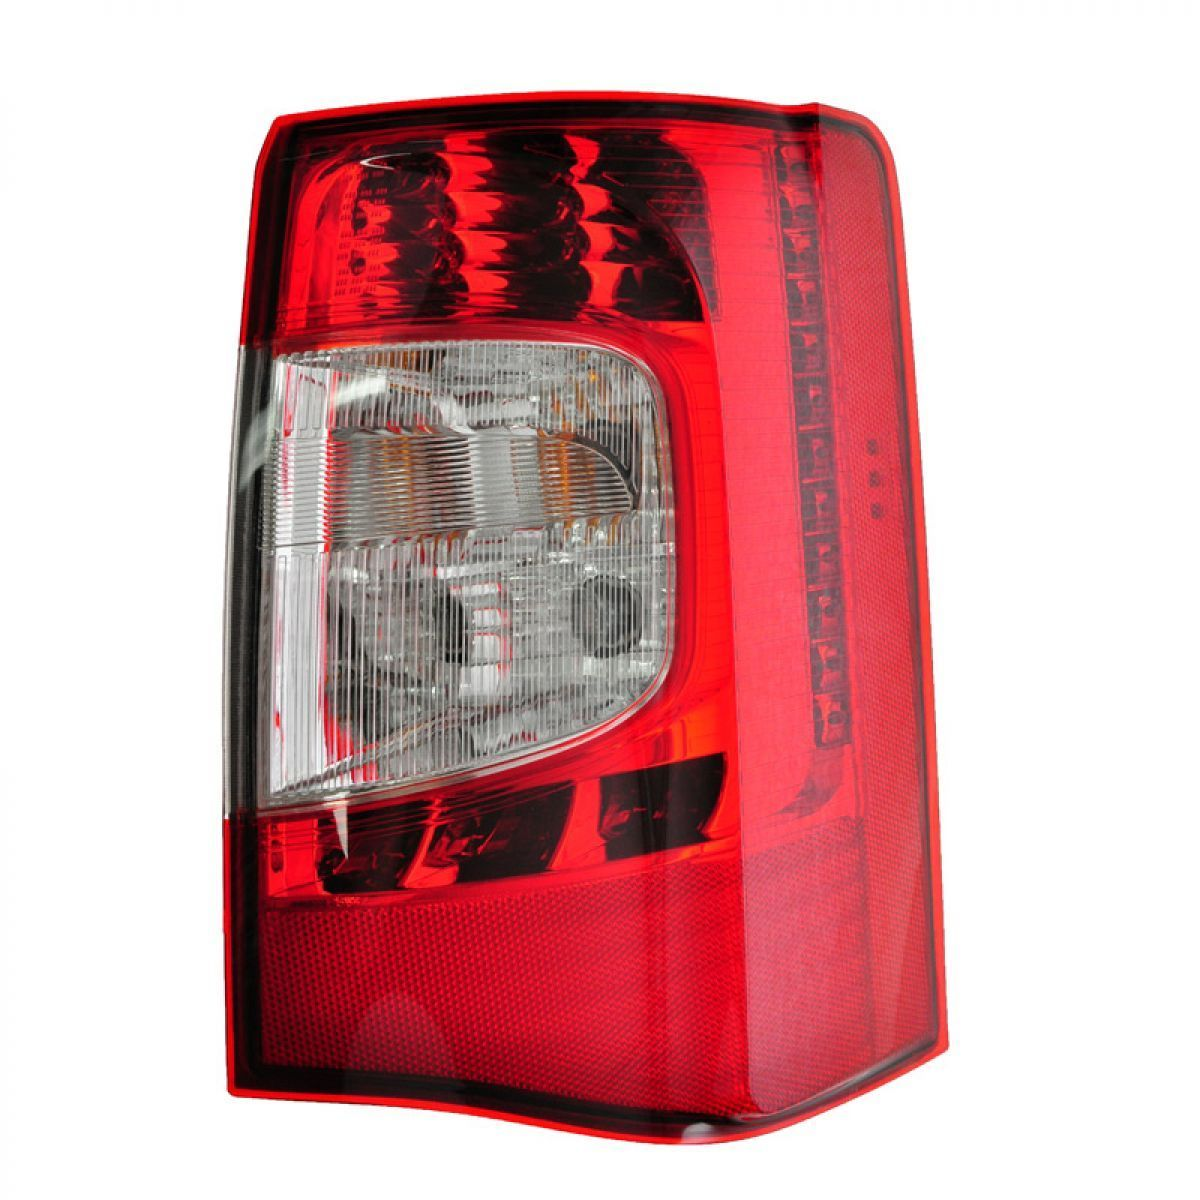 Chrysler Town and Country 2011 2012 2013 2014 2015 2016 tail light right passenger